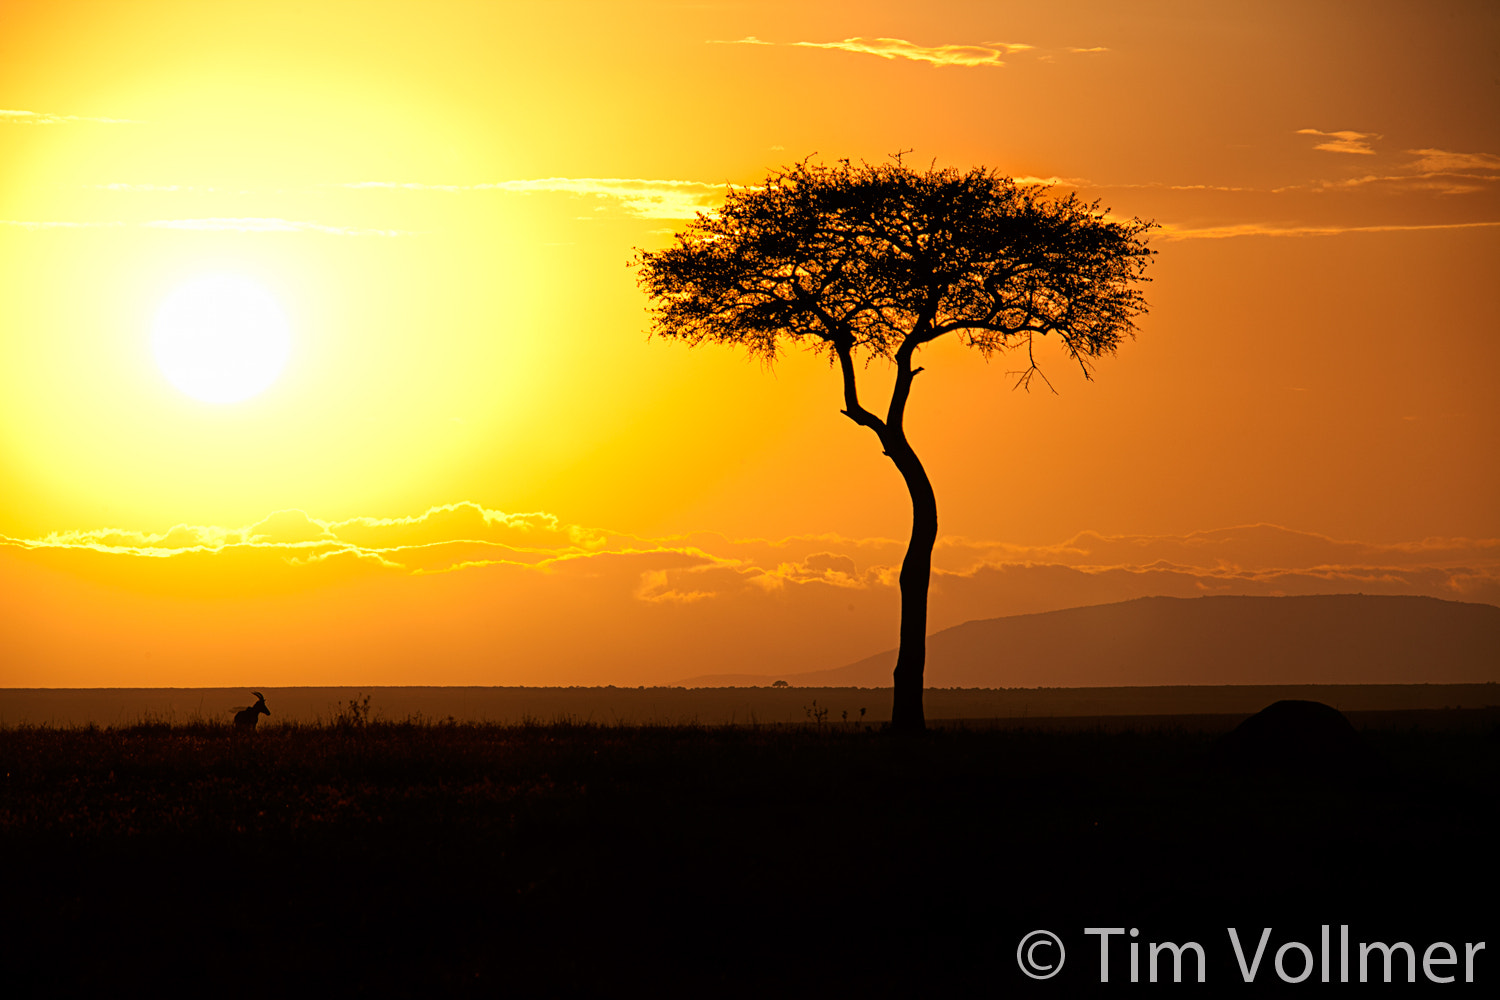 Photograph Sunrise in Kenya by Tim Vollmer on 500px